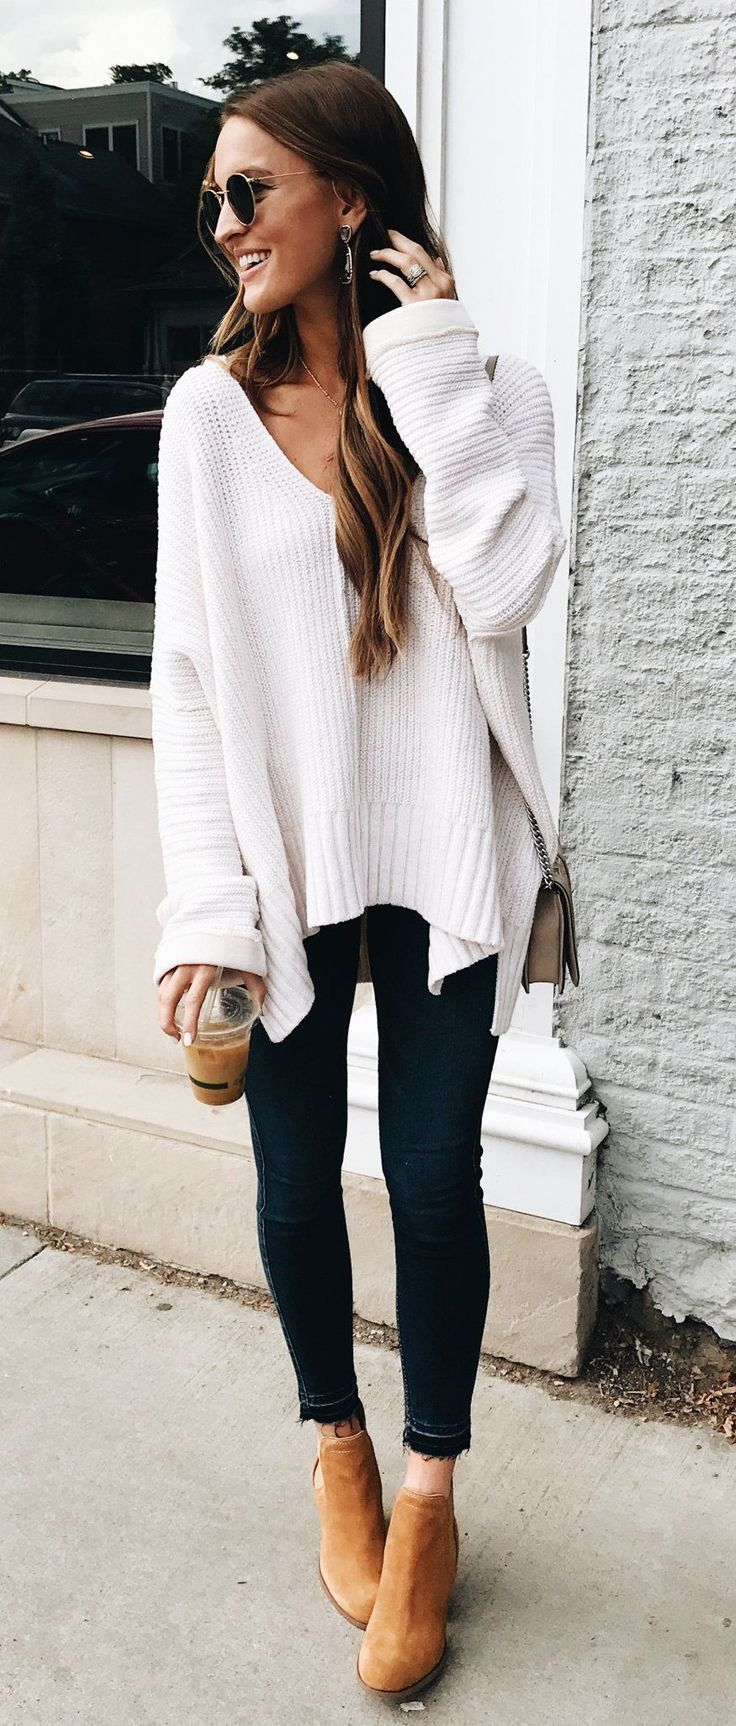 3a369ab3903e fall #outfits Women's white sweater | Fashion & Beauty in 2019 ...